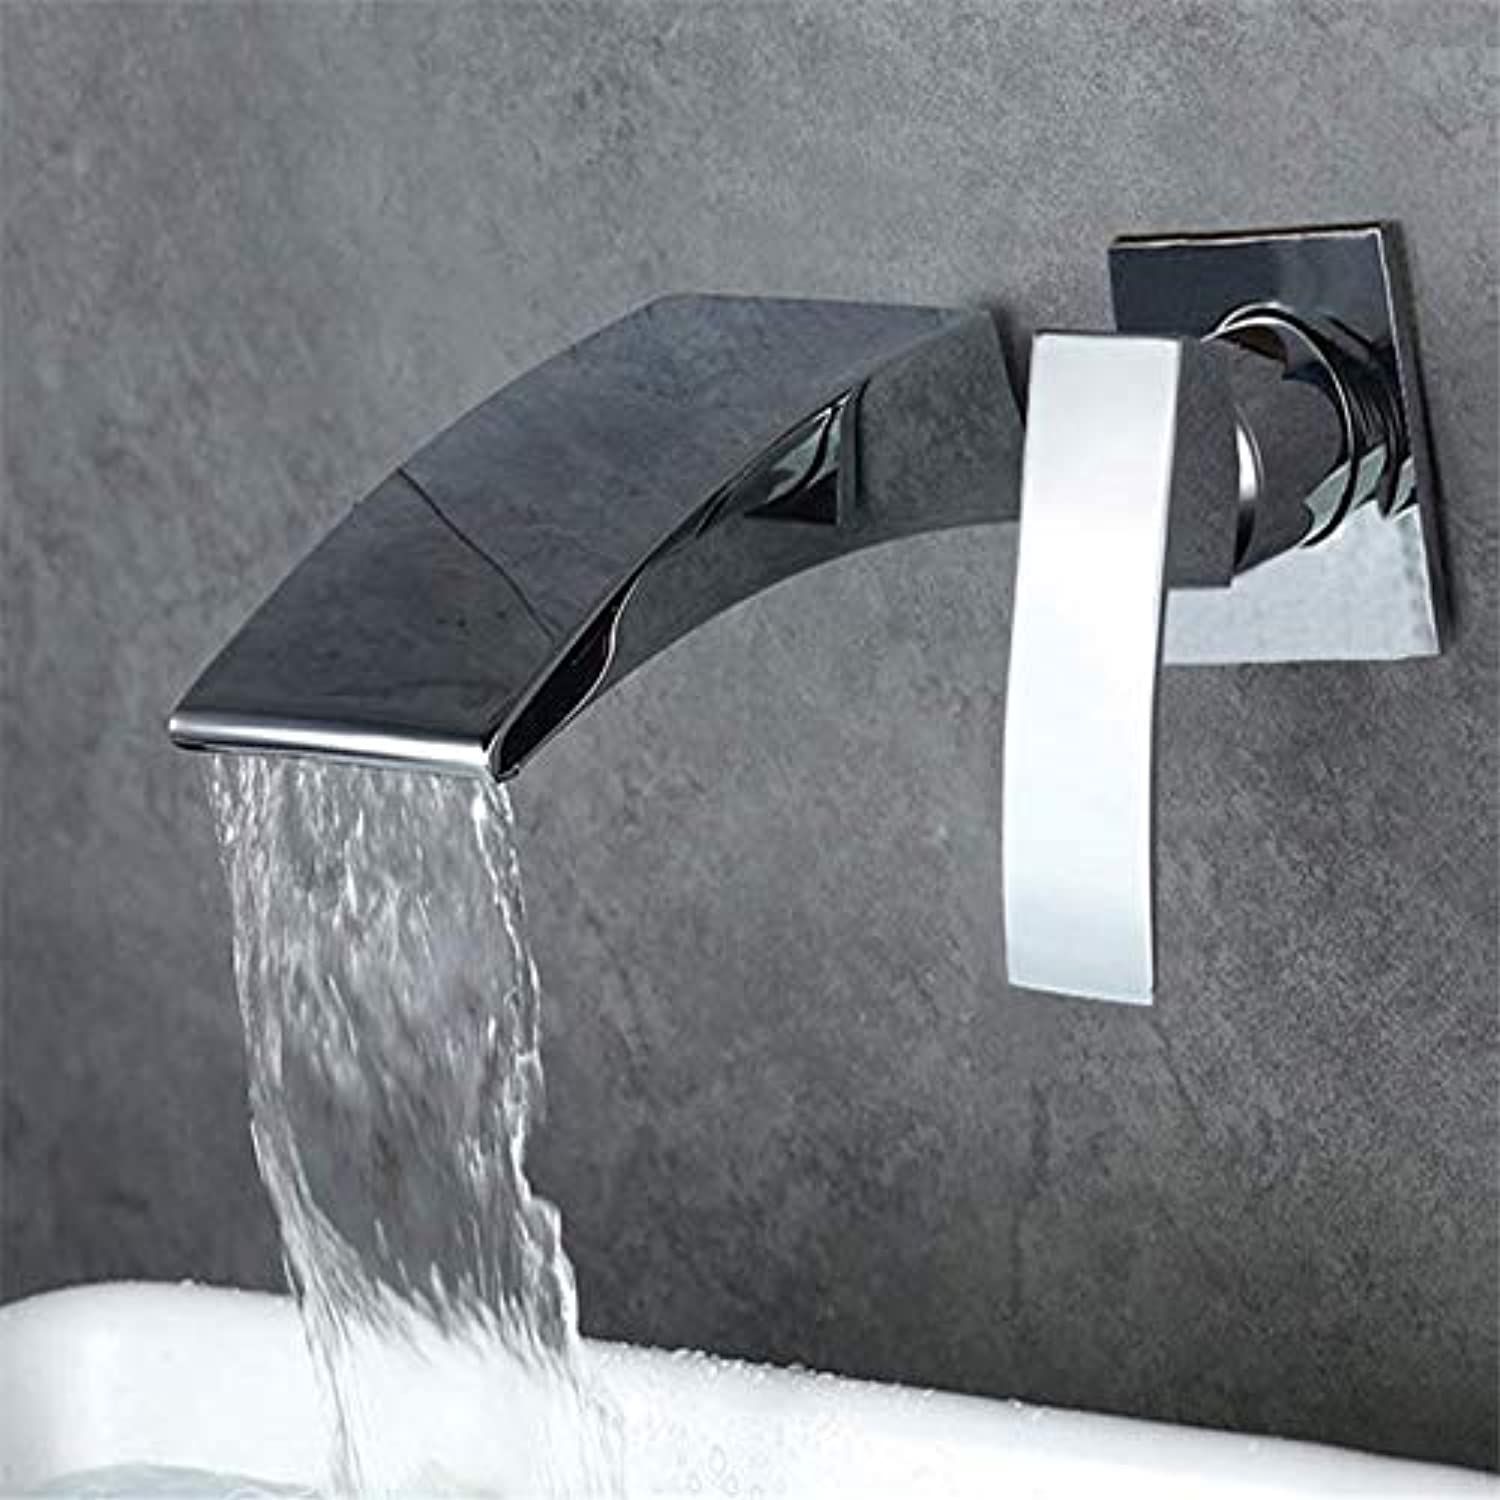 Modern Antique Copper Waterfall Bathtub Faucet Wall-Mounted Bathroom Faucet Bathtub Faucet Buried Wall hot and Cold Water Control Single Handle